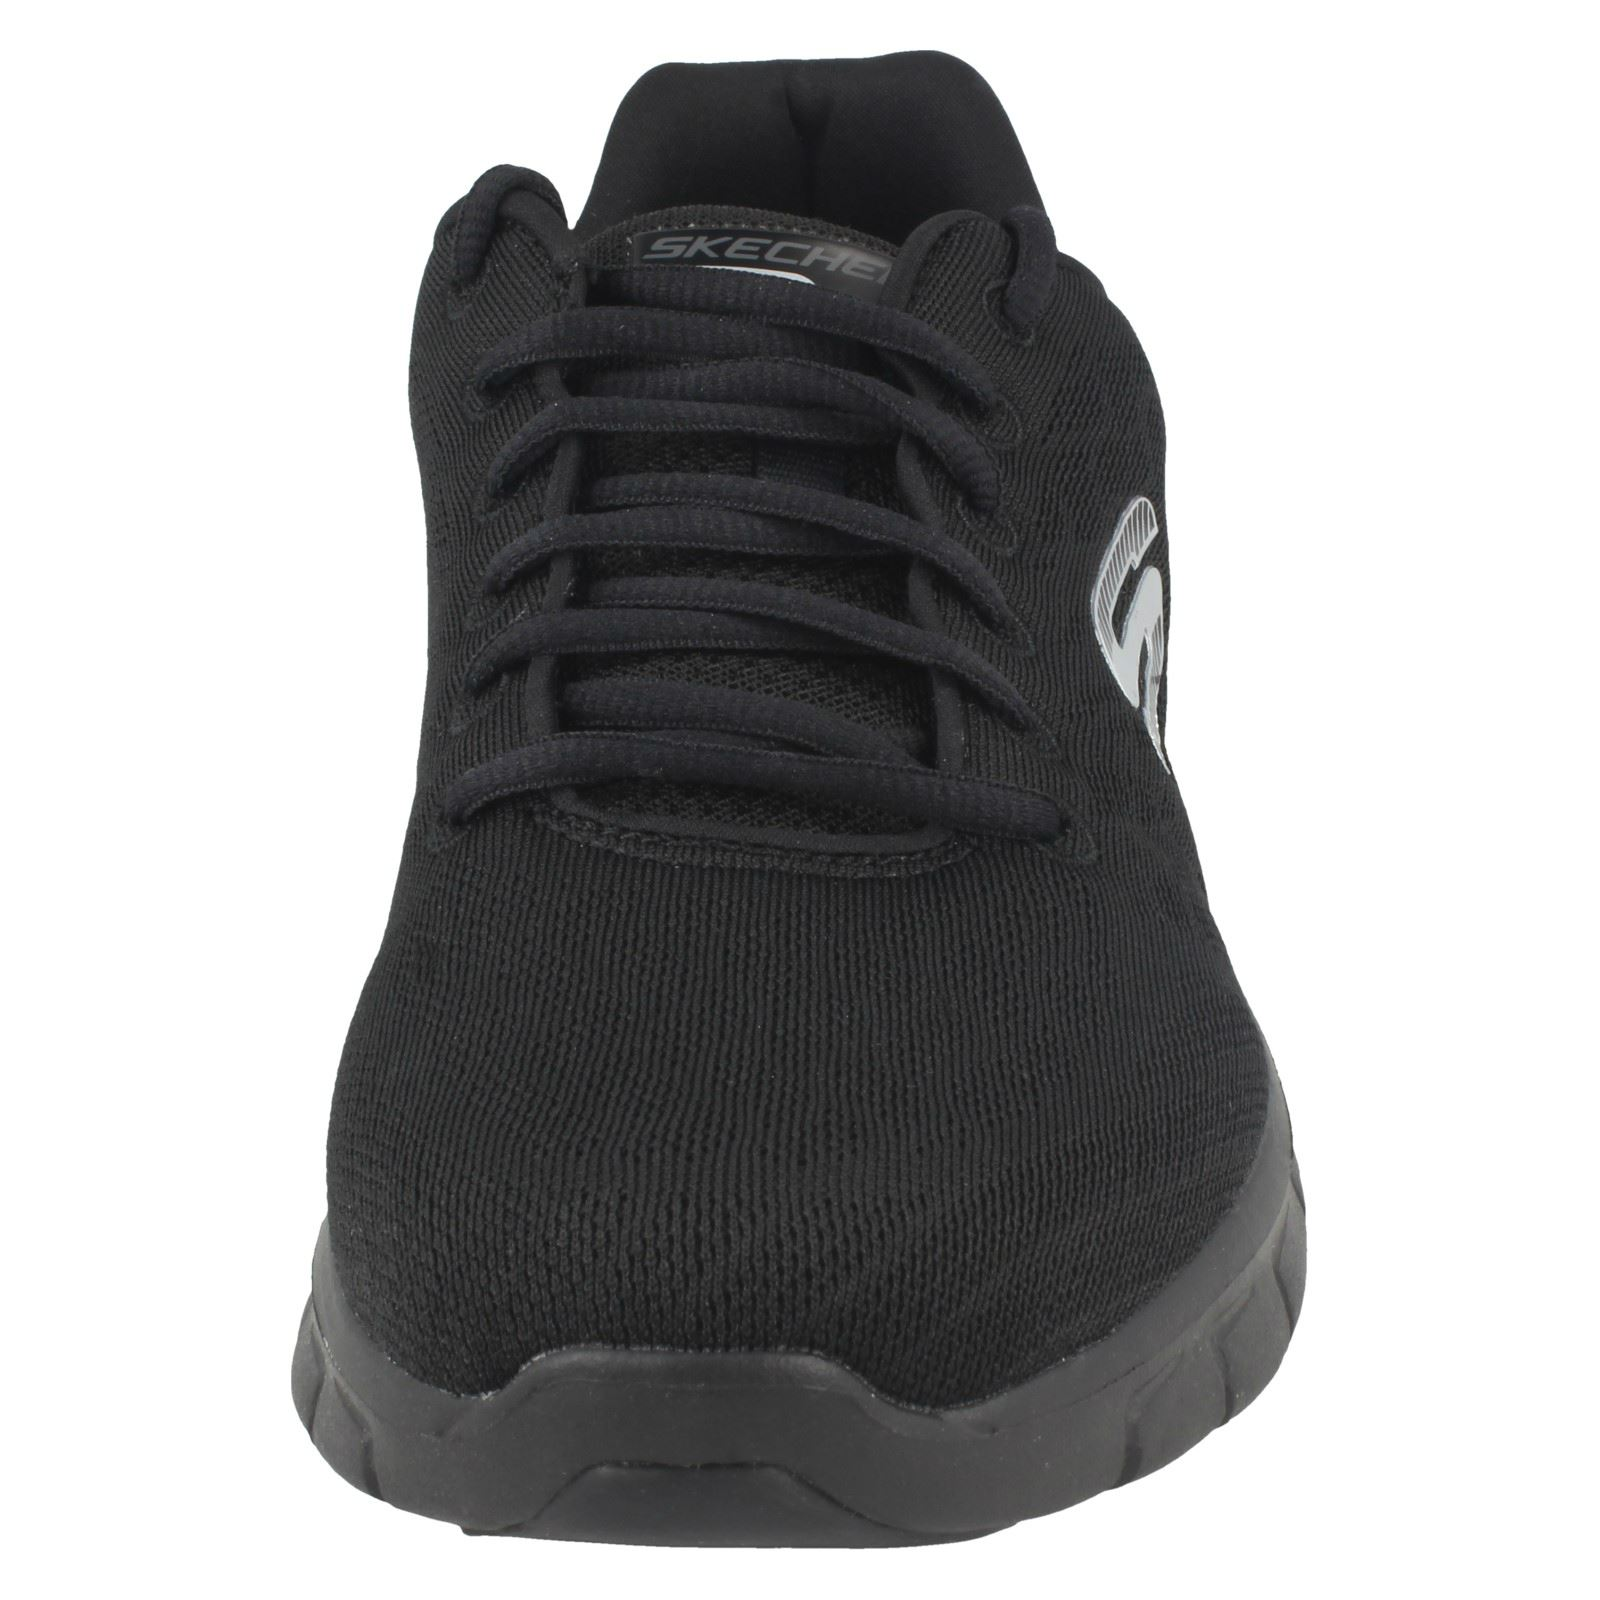 Mens-Skechers-Casual-Trainer-Synergy-Fine-Tune thumbnail 8